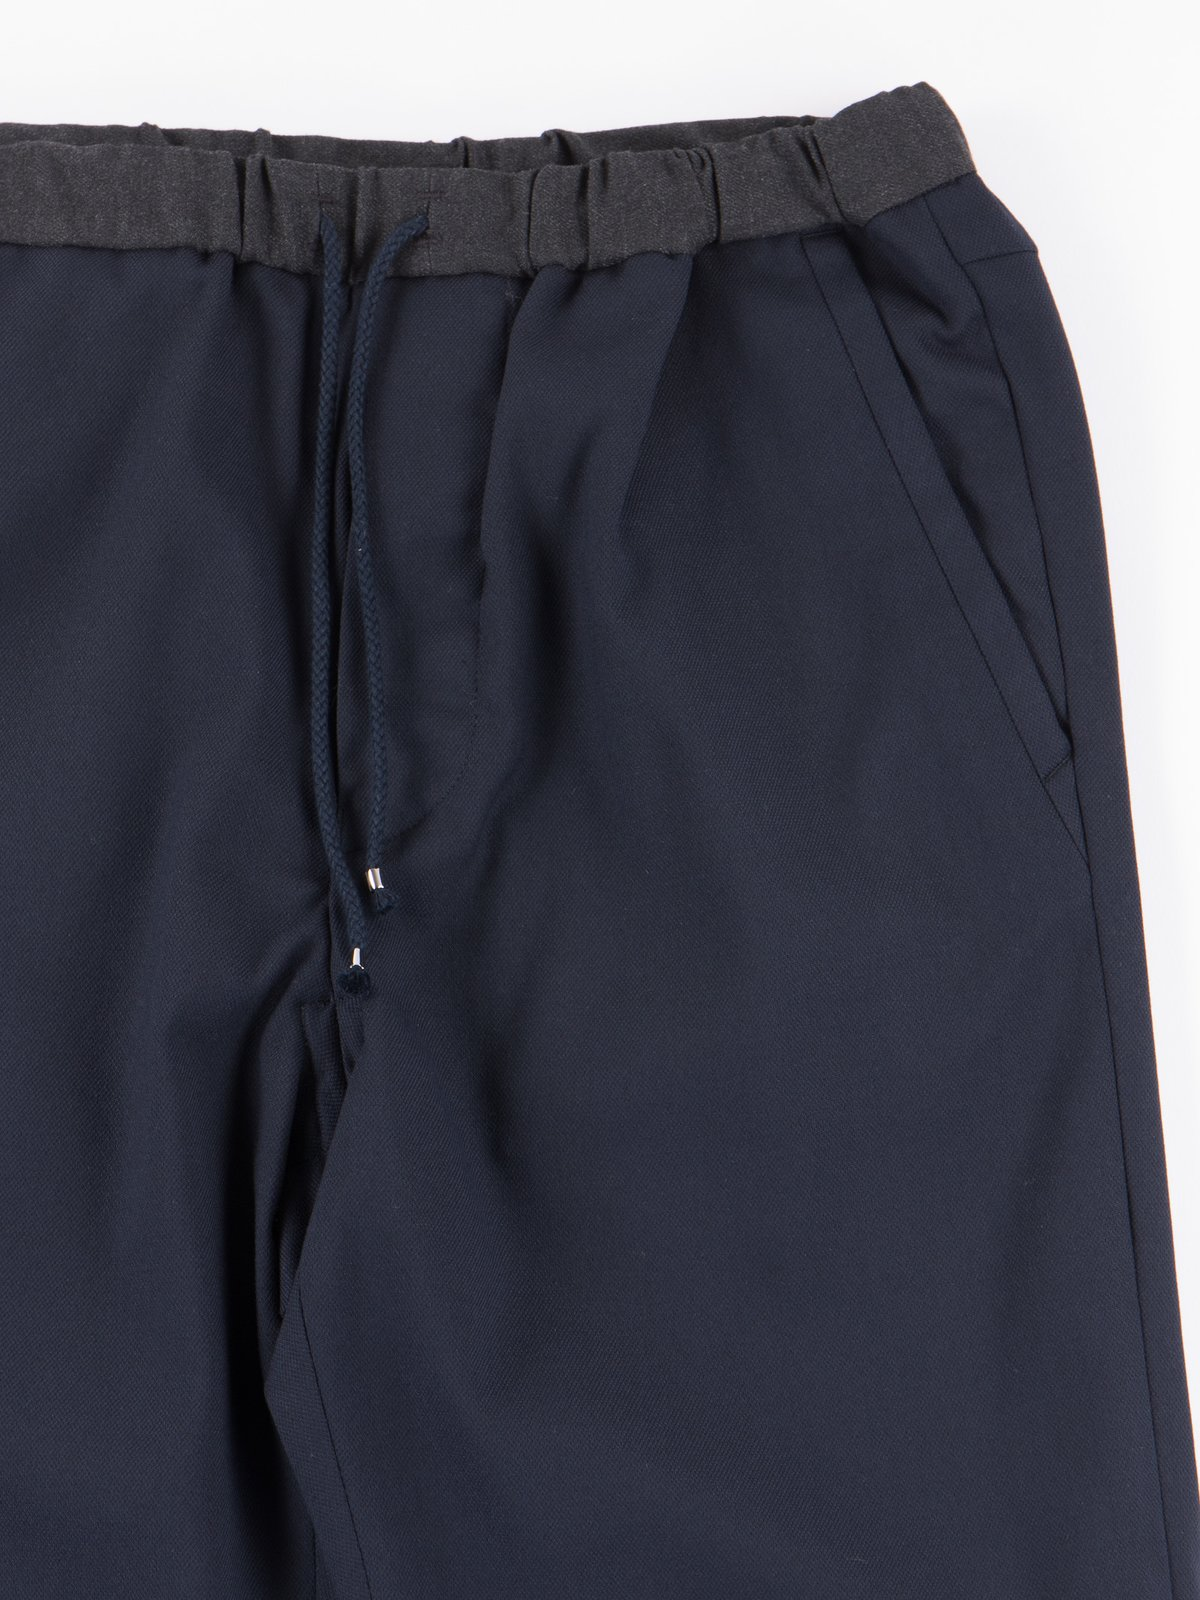 Dark Navy Slim Easy Slacks - Image 2